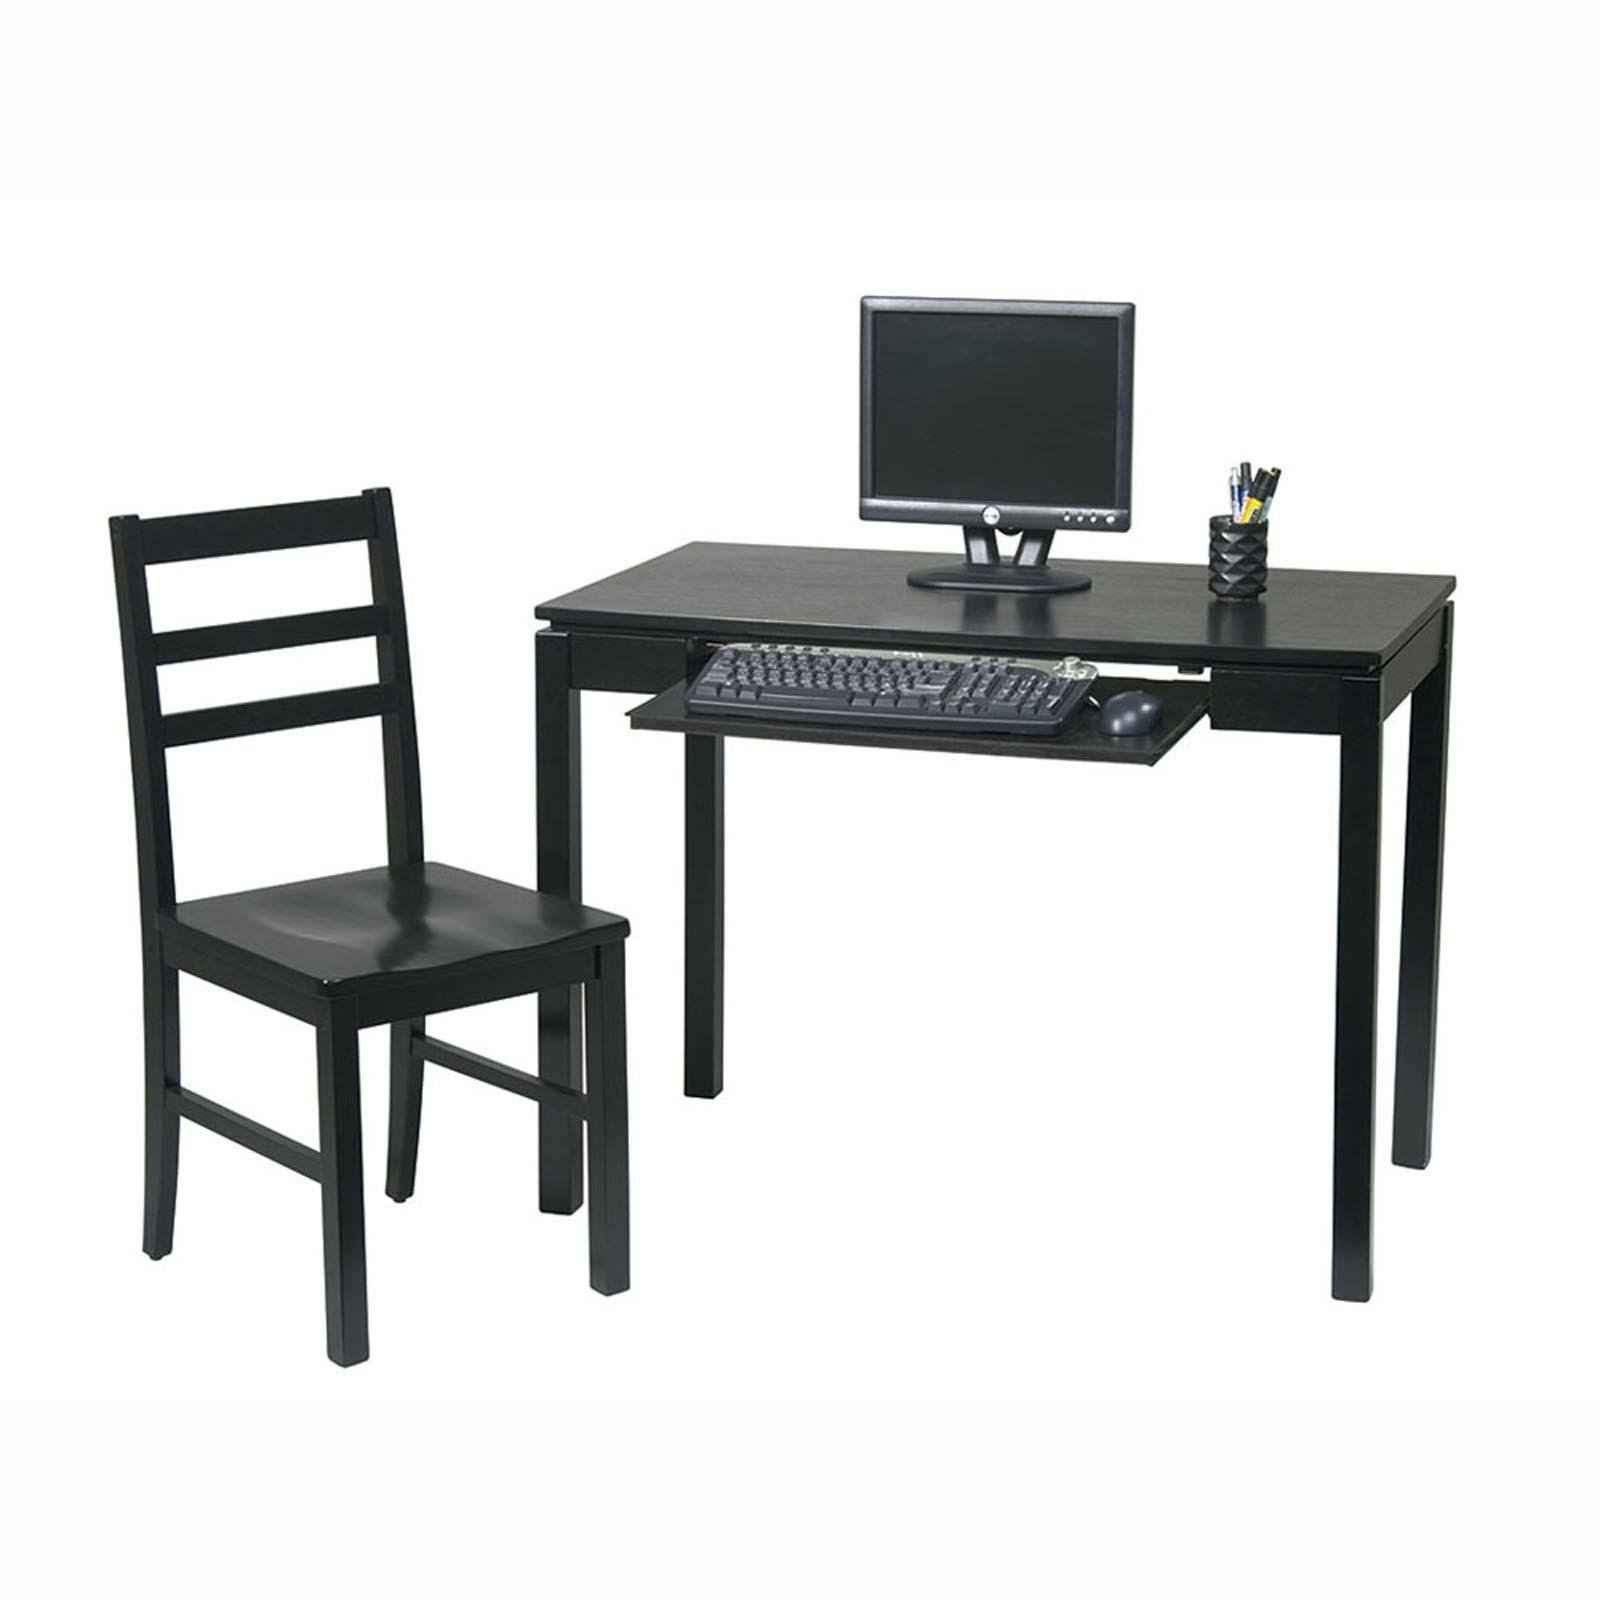 Black Desk Chair Computer Desk Chair Office Furniture